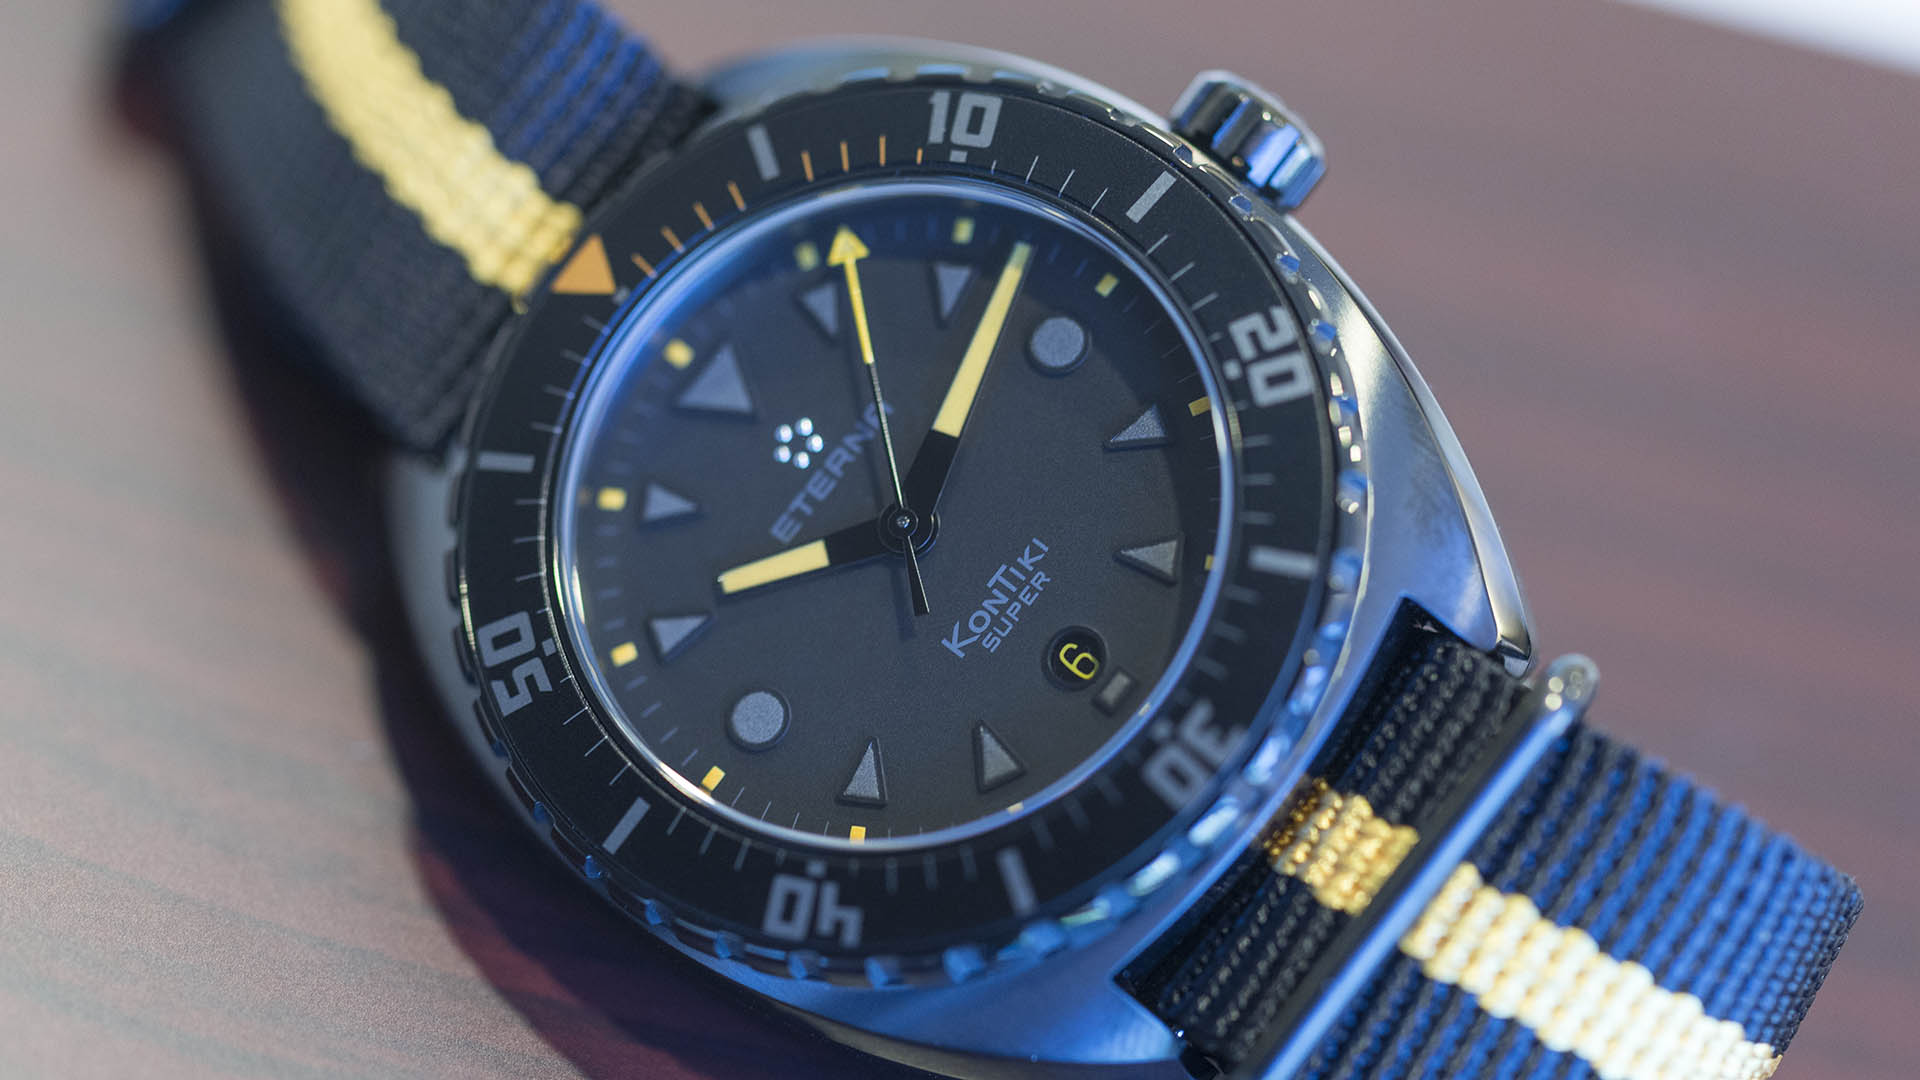 Eterna_Super_Kontiki_Black_Limited_Edition_1273-43-41-1365-1-.jpg